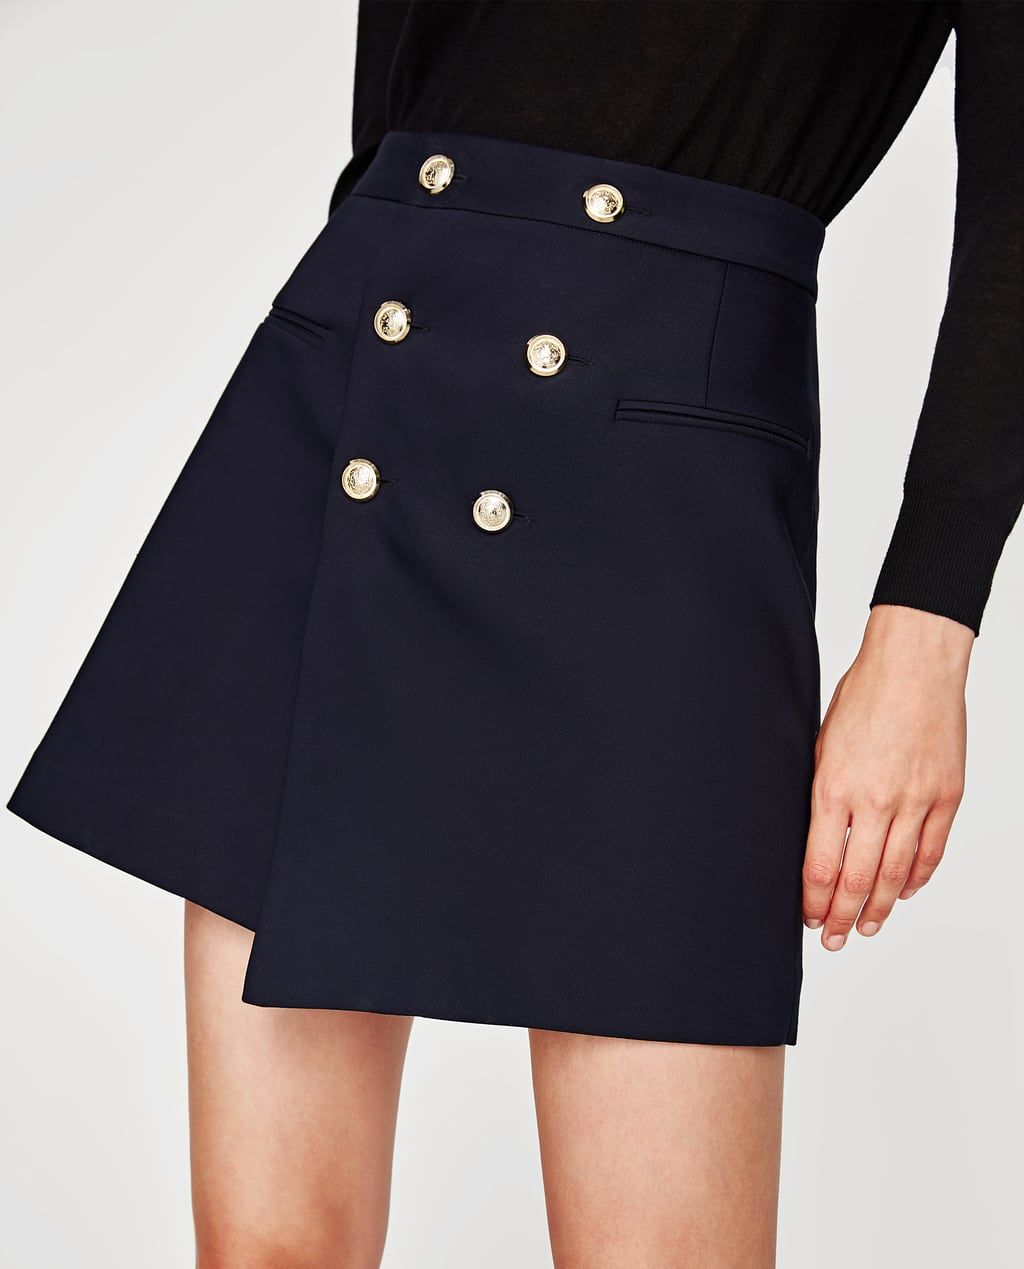 0c1373bf37f374 SKIRT WITH GOLD BUTTONS-Mini-SKIRTS-WOMAN-SALE | ZARA United States ...